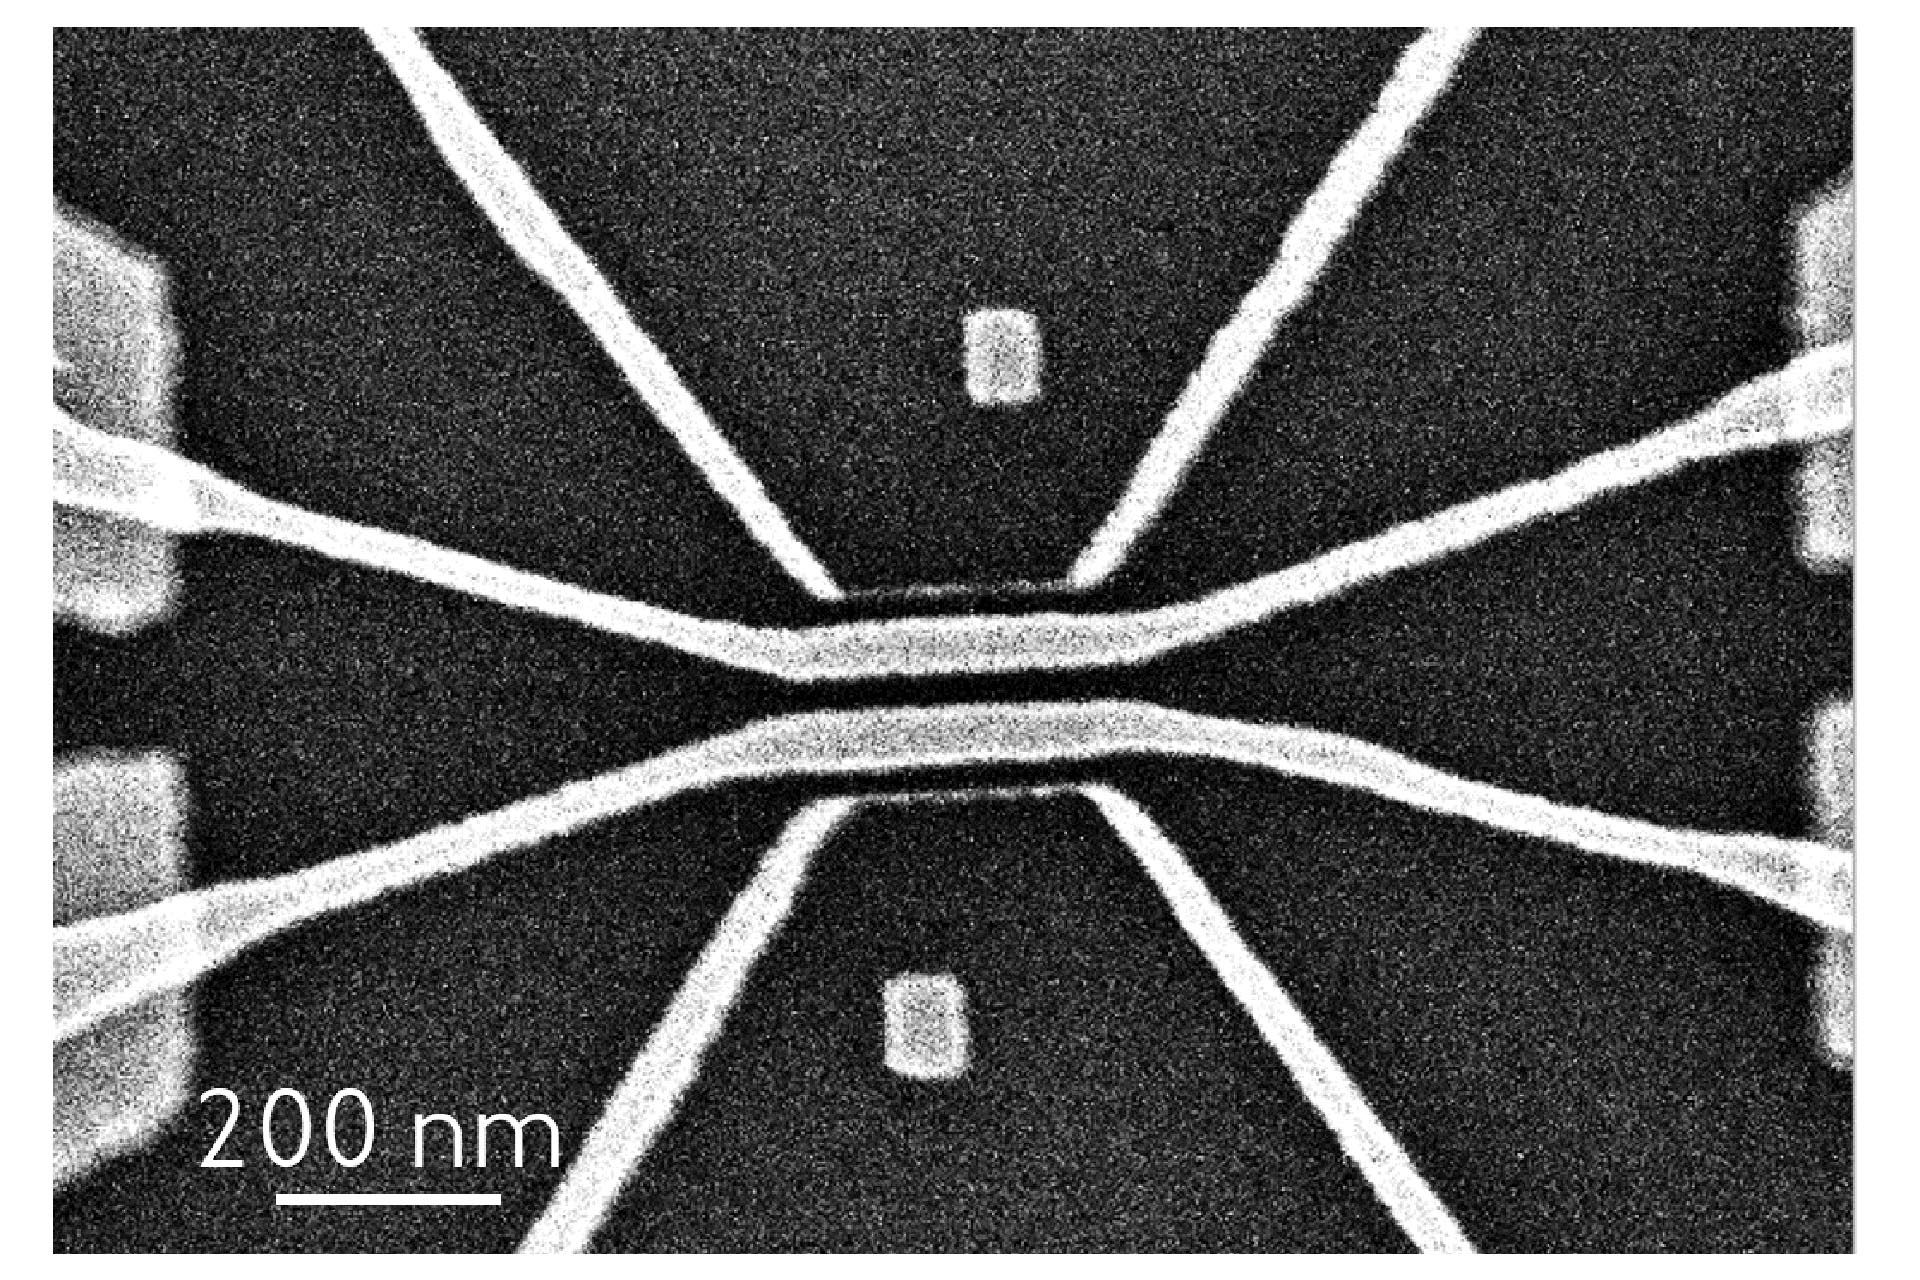 Narrow and broader lines contacted to electrodes prepared by electron beam lithography. The pattern was deposited via the high-resolution lift-off process. (Courtesy of Bojun Cheng, ETH Zurich & Heidelberg Instruments Nano)